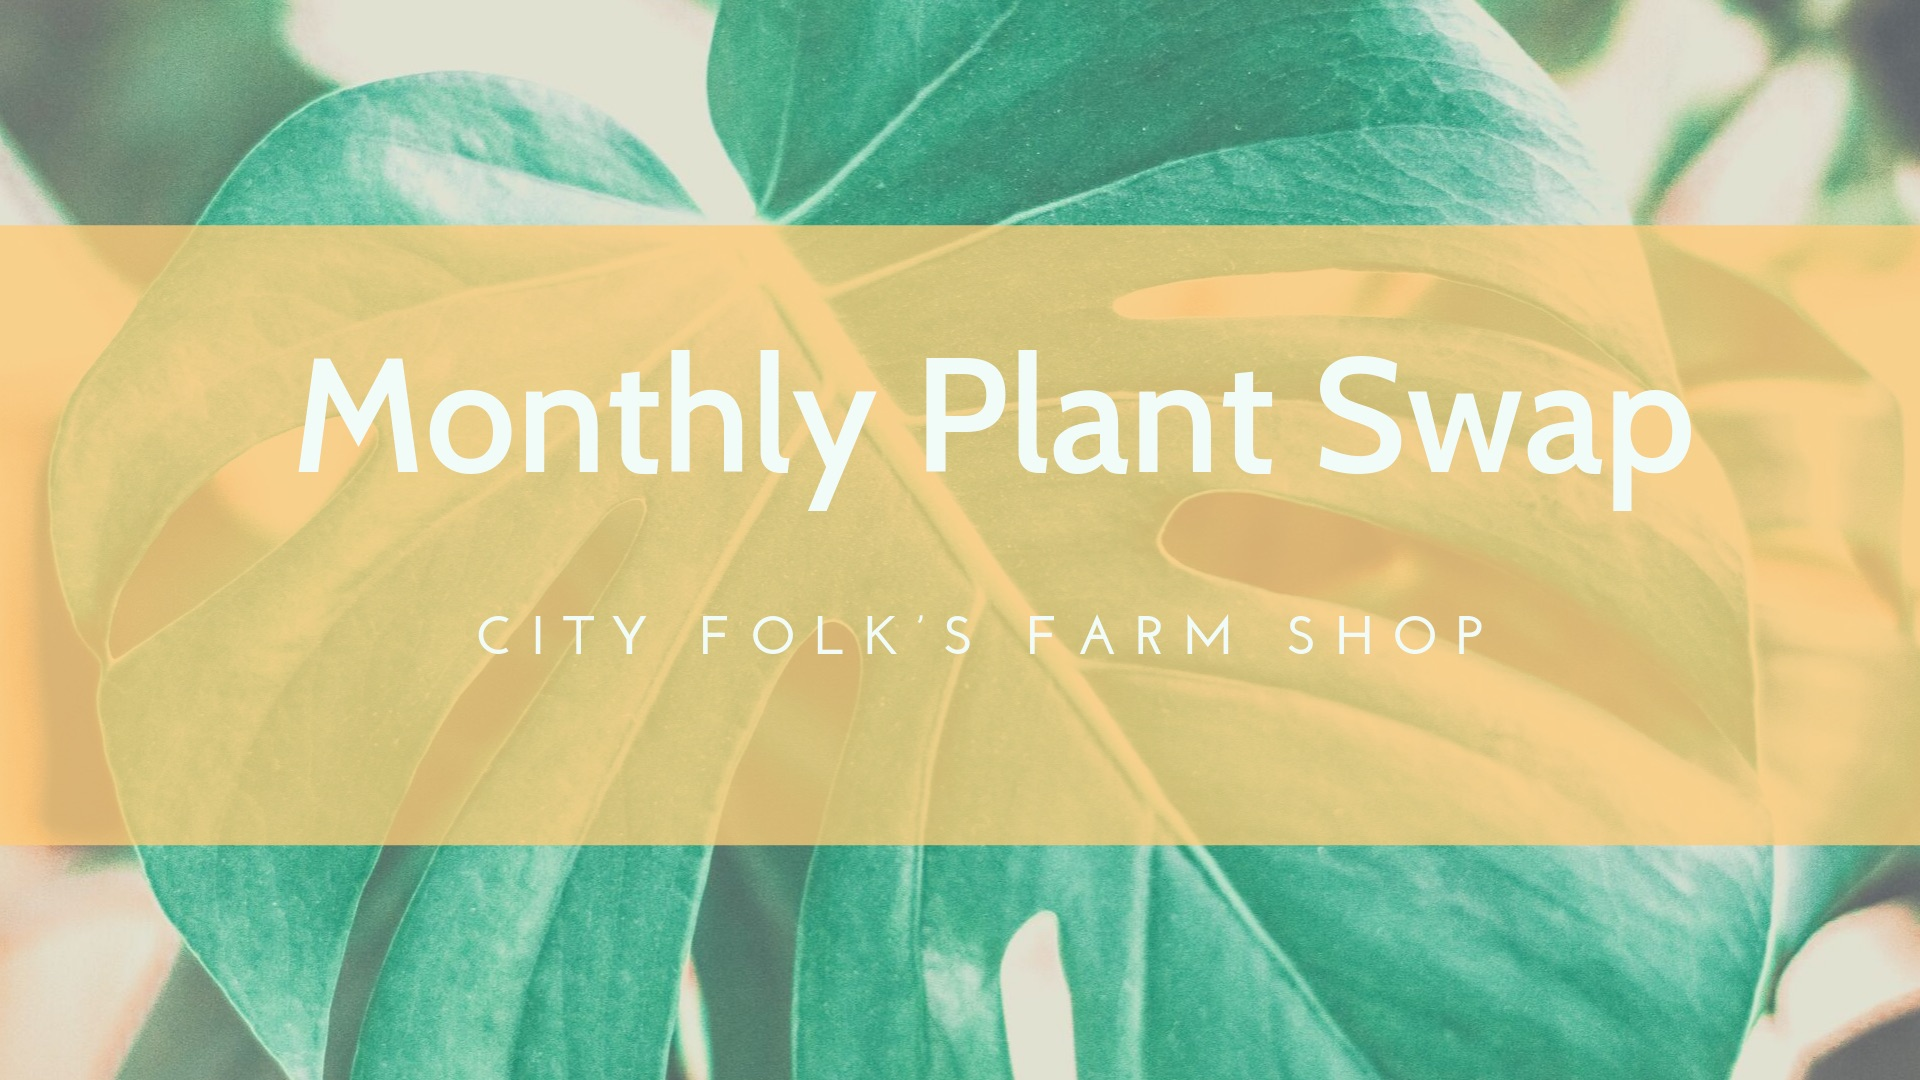 Monthly Plant Swap poster